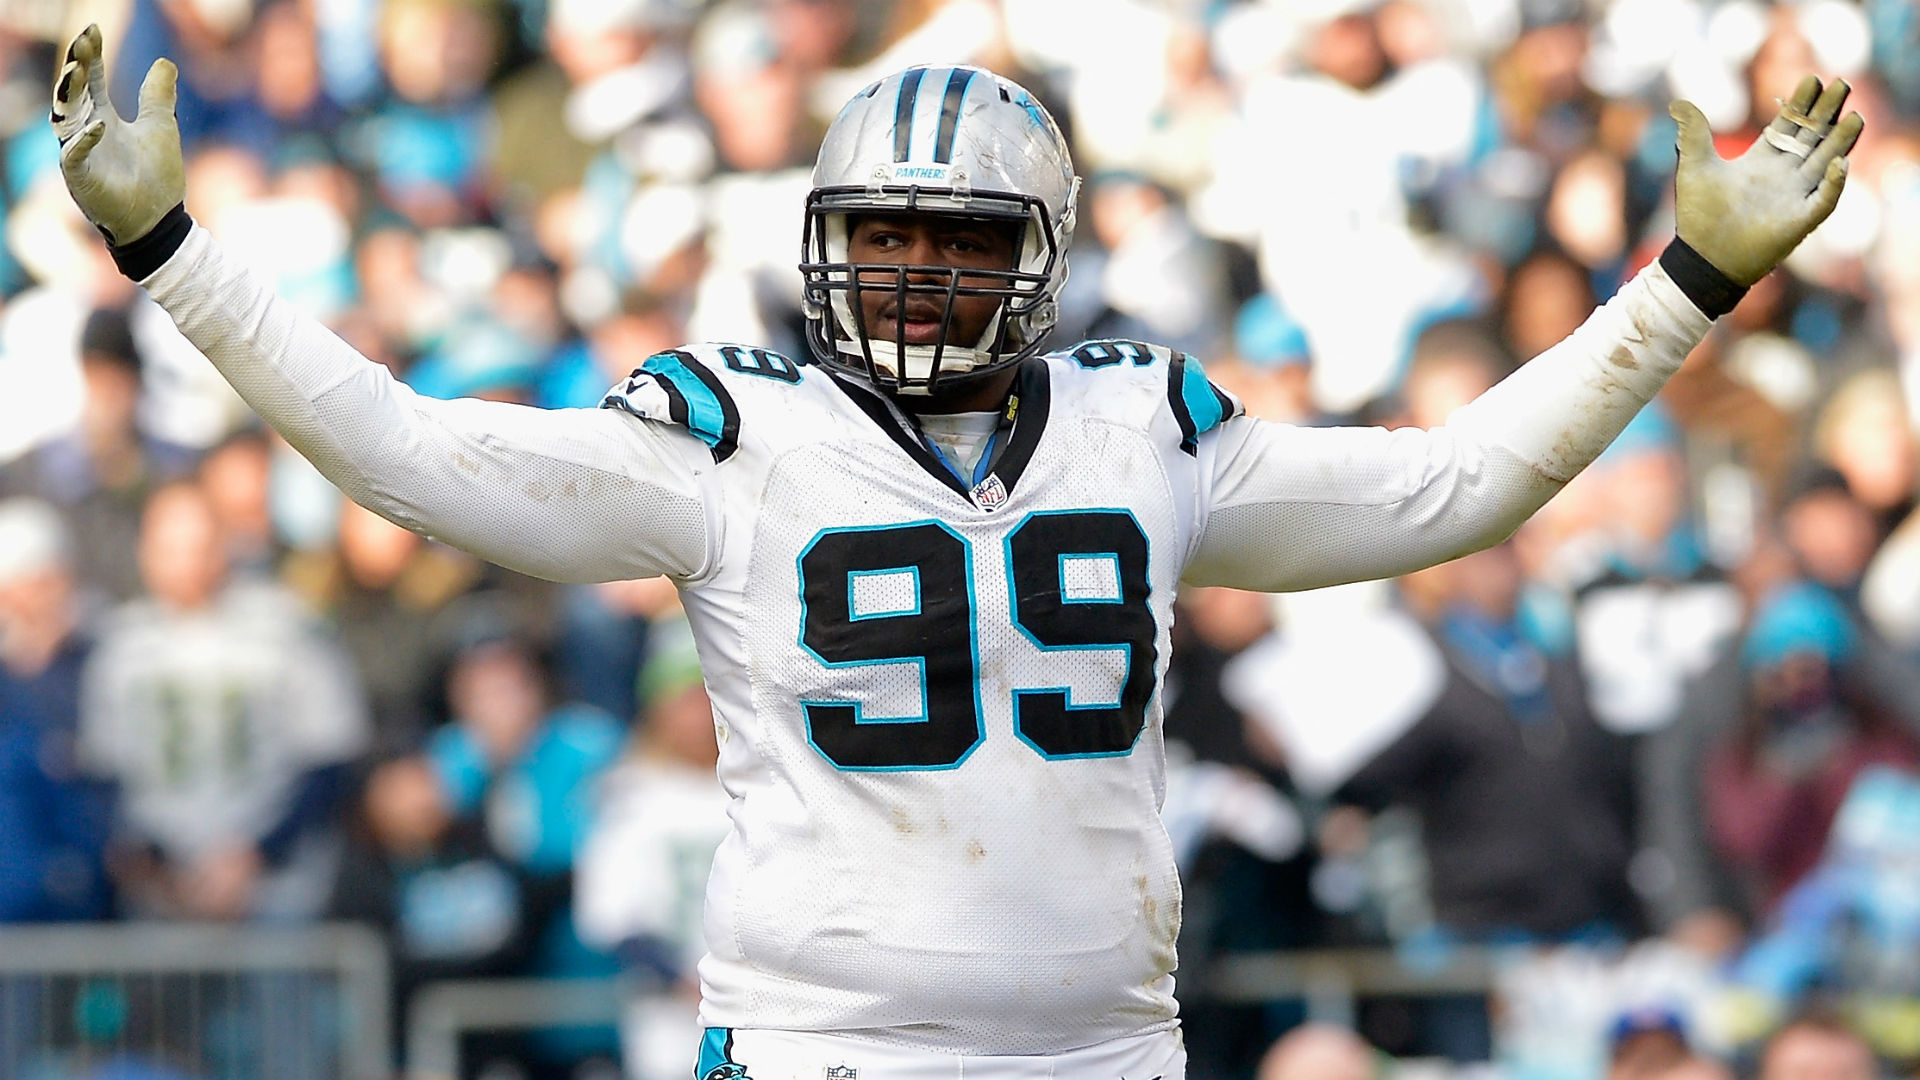 Panthers give DT Kawann Short monster contract extension